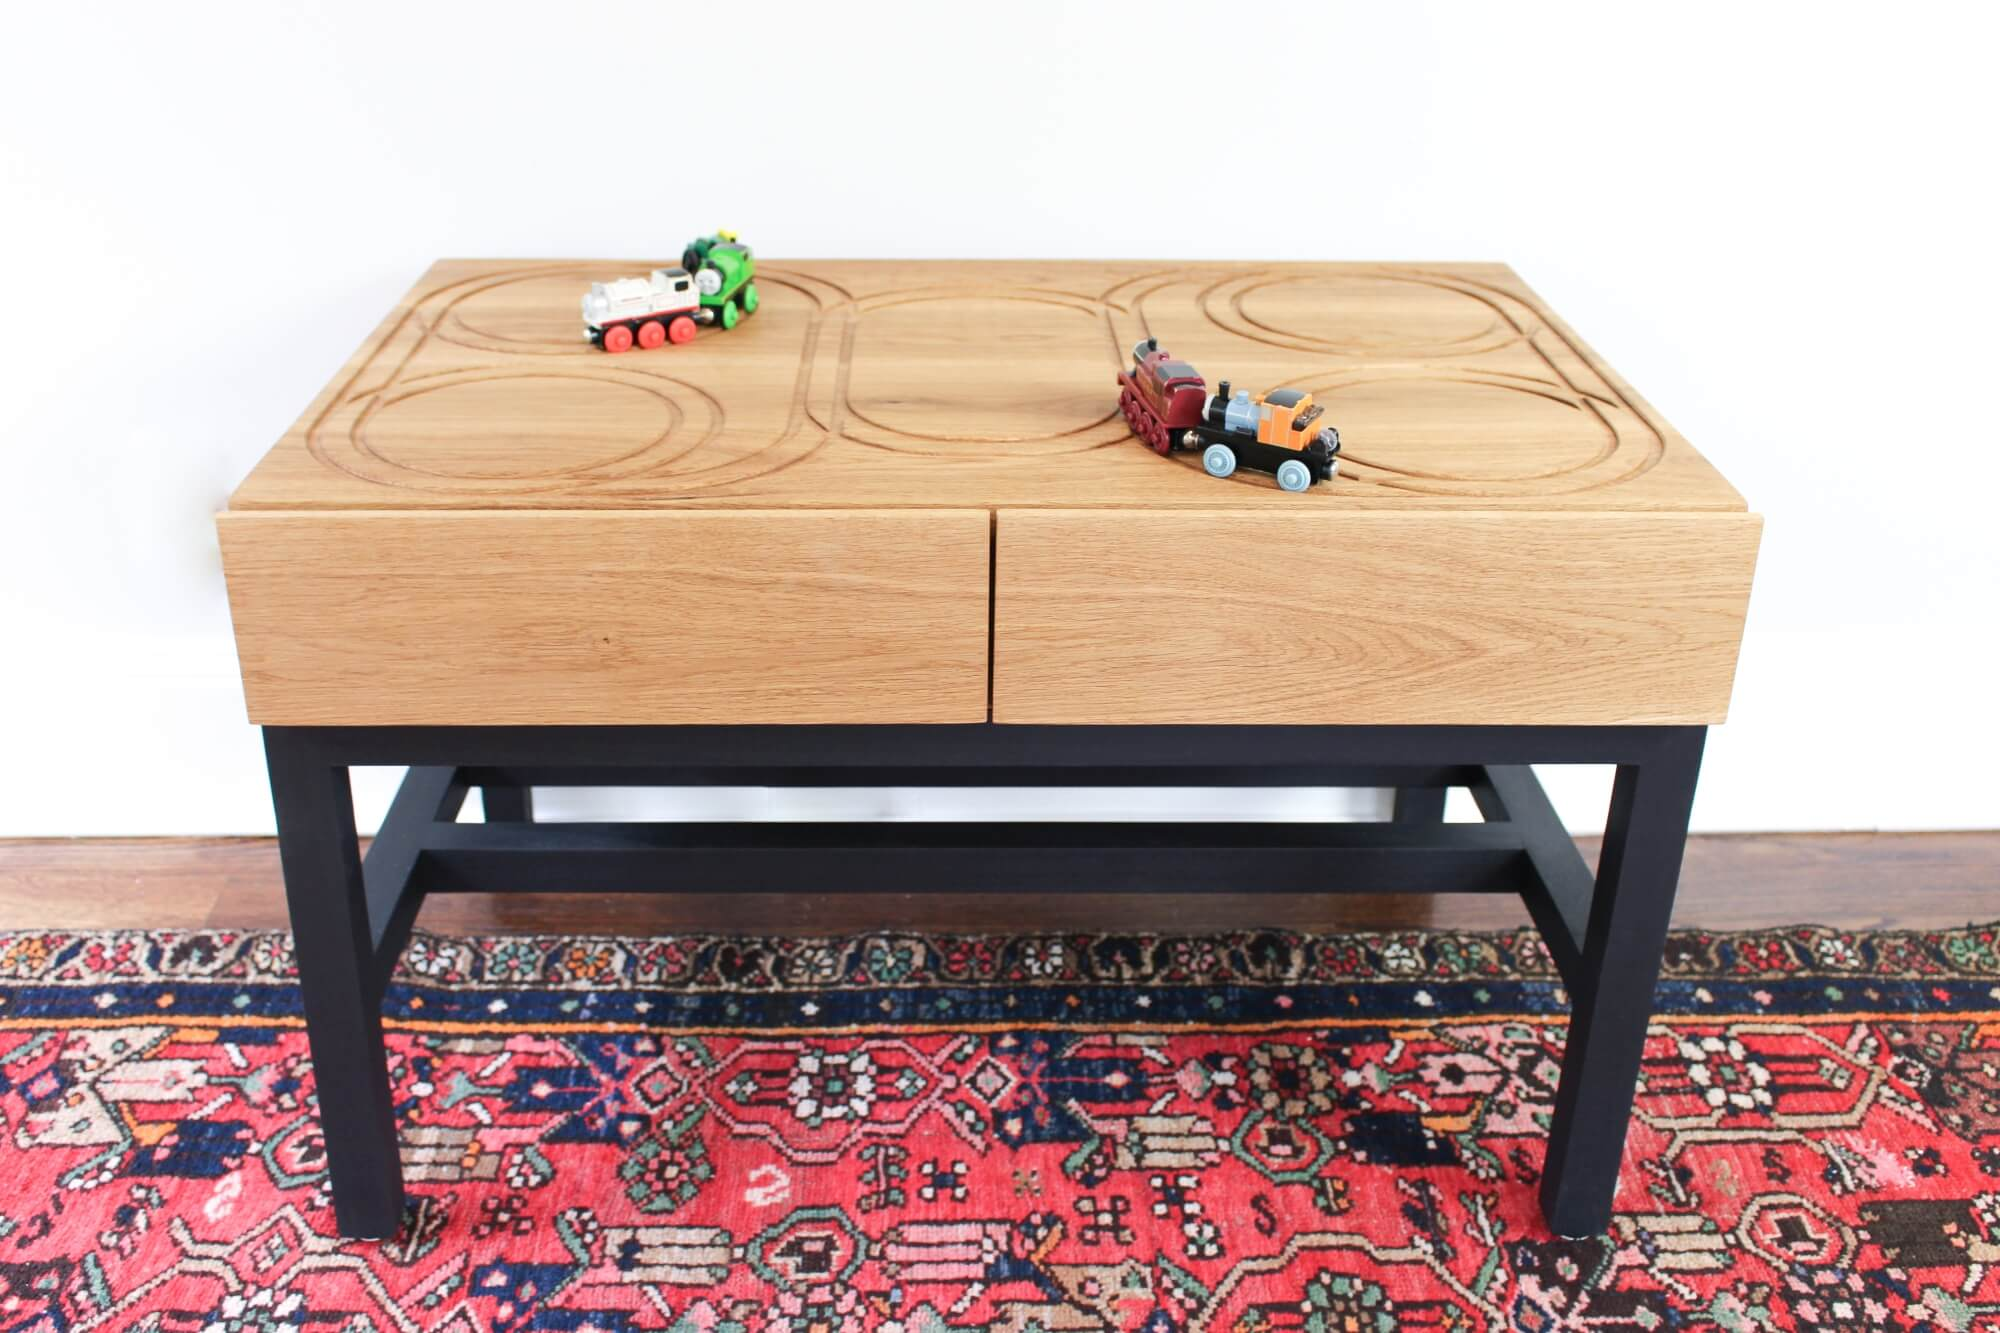 DIY wood toy train table finished with toy safe wood finish.